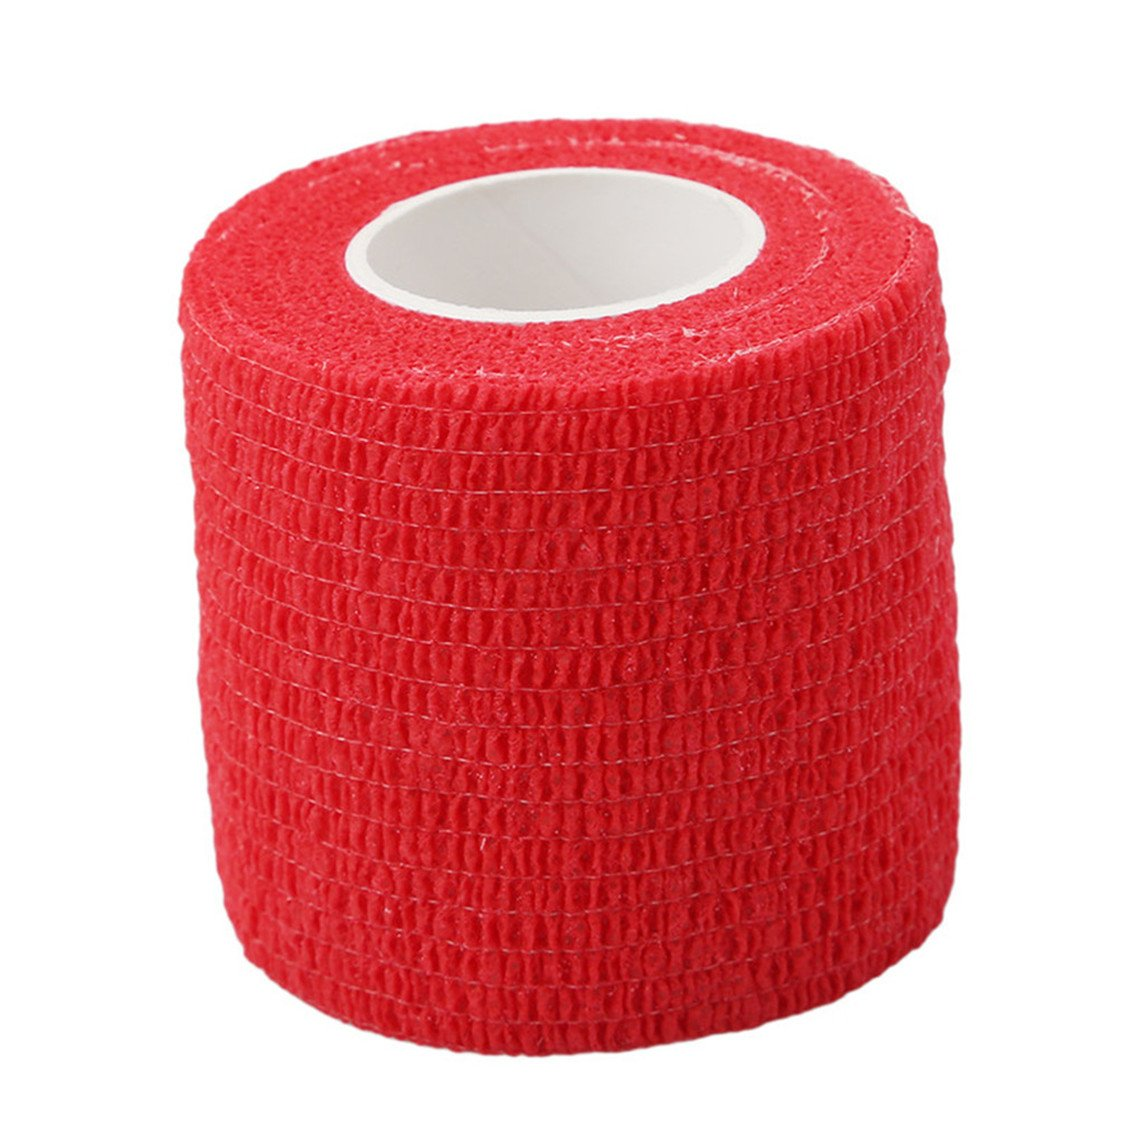 Dolland Adhesive Bandage Wrap Stretch Self-adherent Tape For Sports, Wrist, Ankle,Red